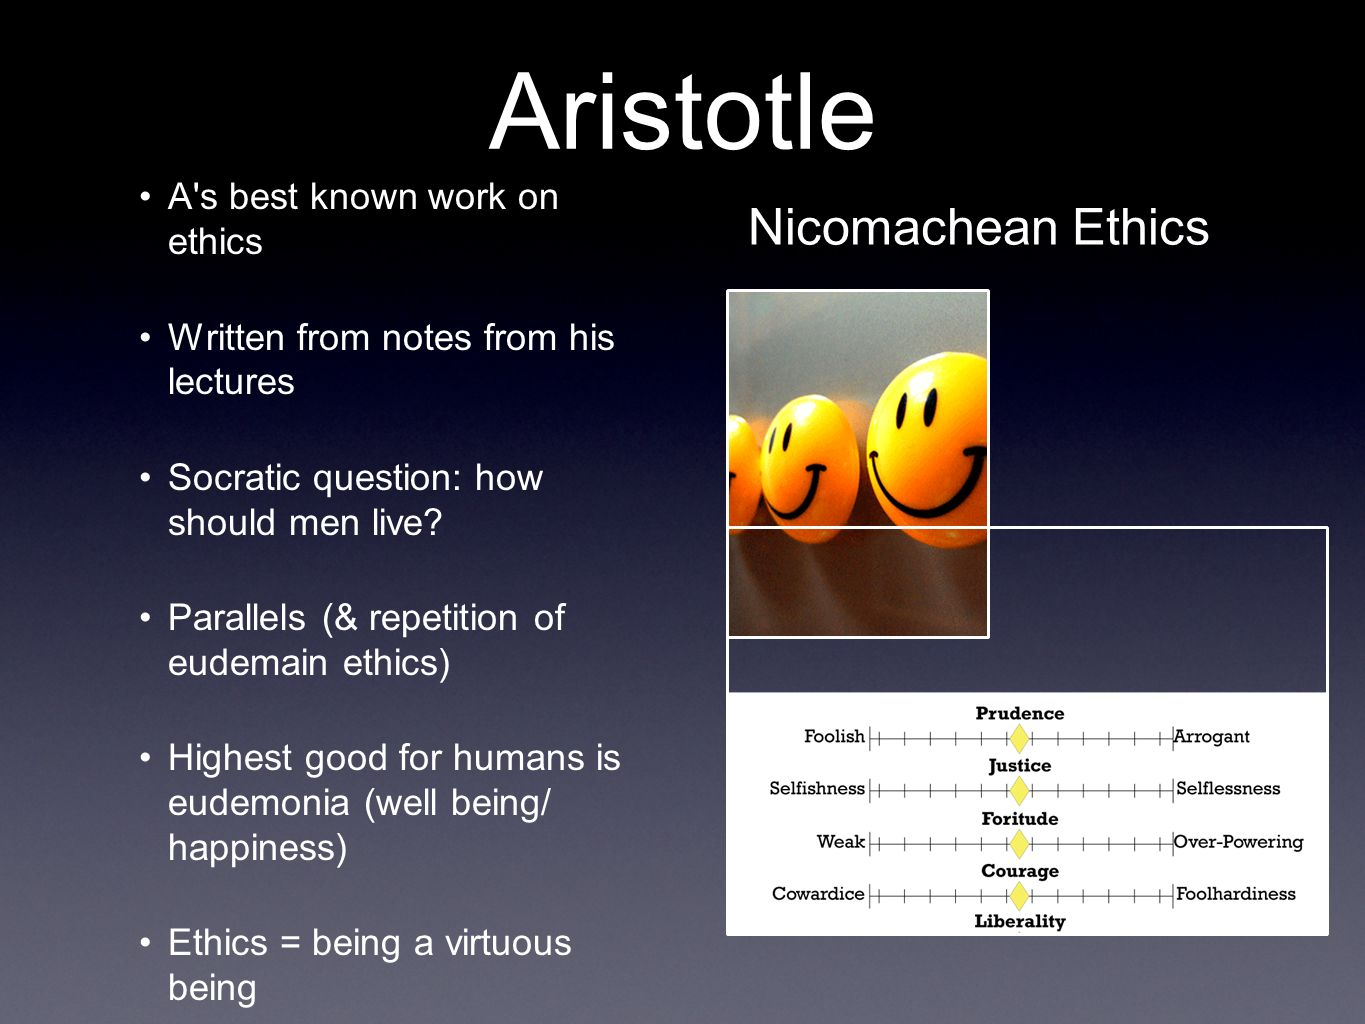 aristotles essay ethics good happy highest life nicomachean Aristotle's goal in nicomachean ethics, book i, is to argue that since there cannot be an infinite number, of merely extrinsic goods, there must be a highest good, to which all human activity ultimately aims (aristotle 1) every human activity aims at some end, whether it is an activity or a.